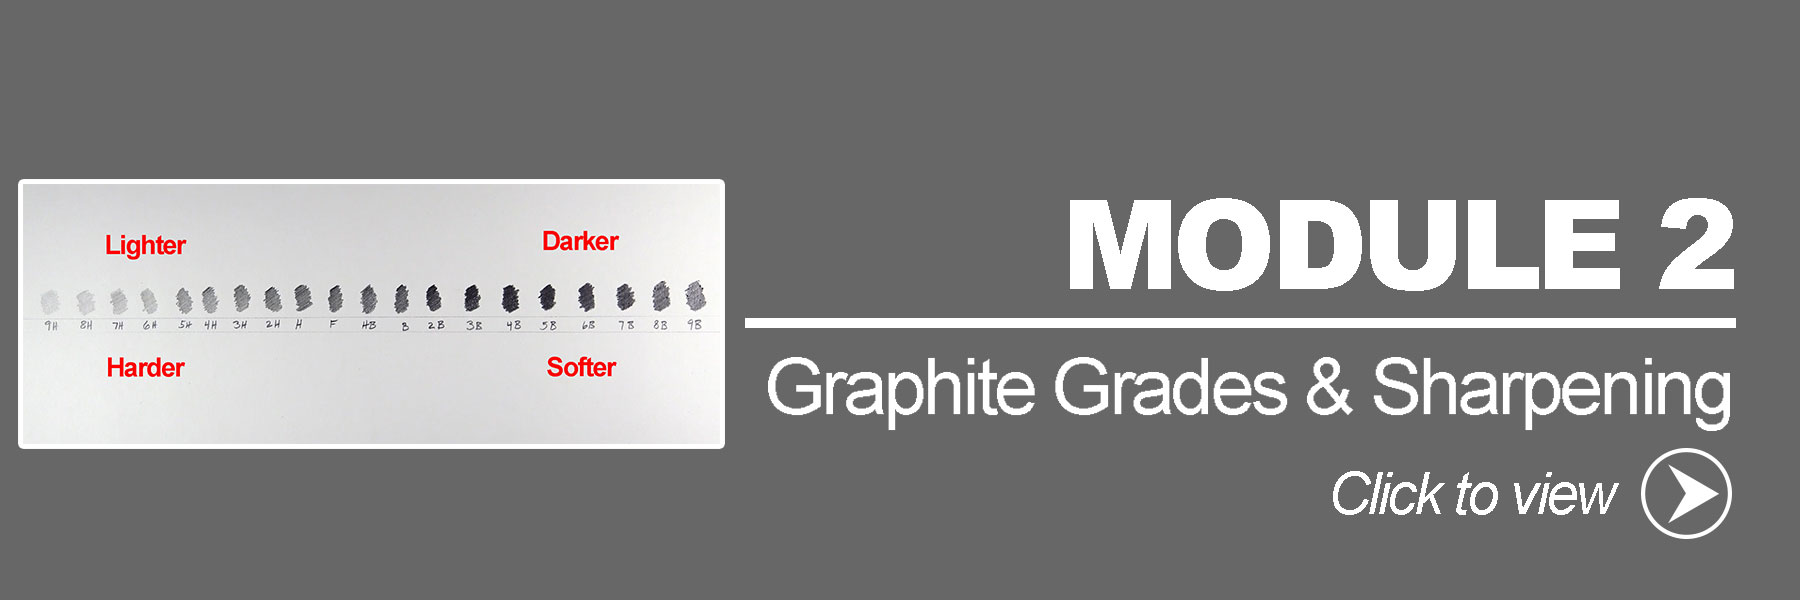 Graphite Grades and Sharpening